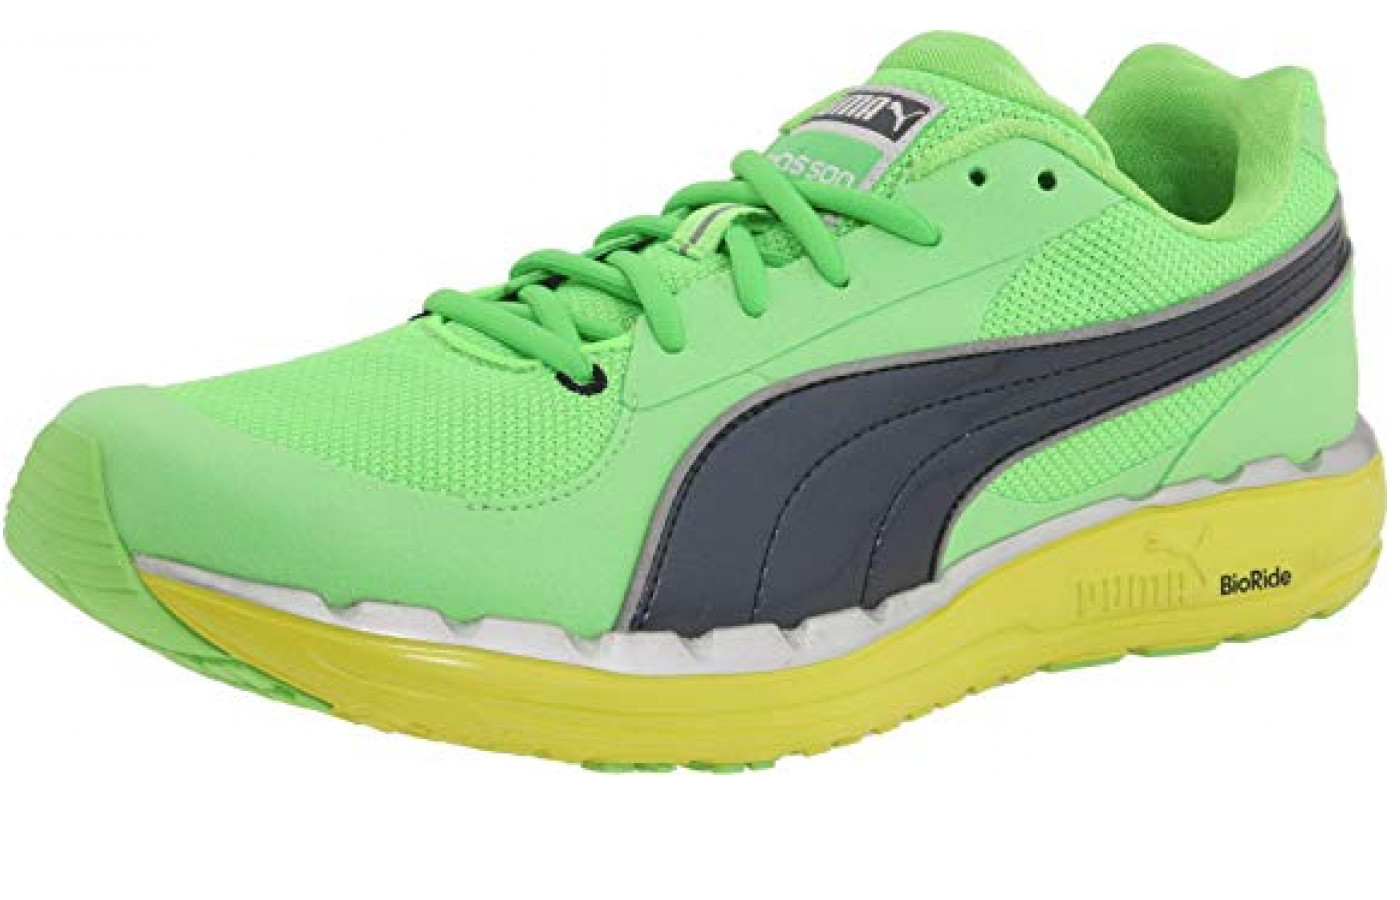 The fast stylish shoe is great for speed work and shorter races.